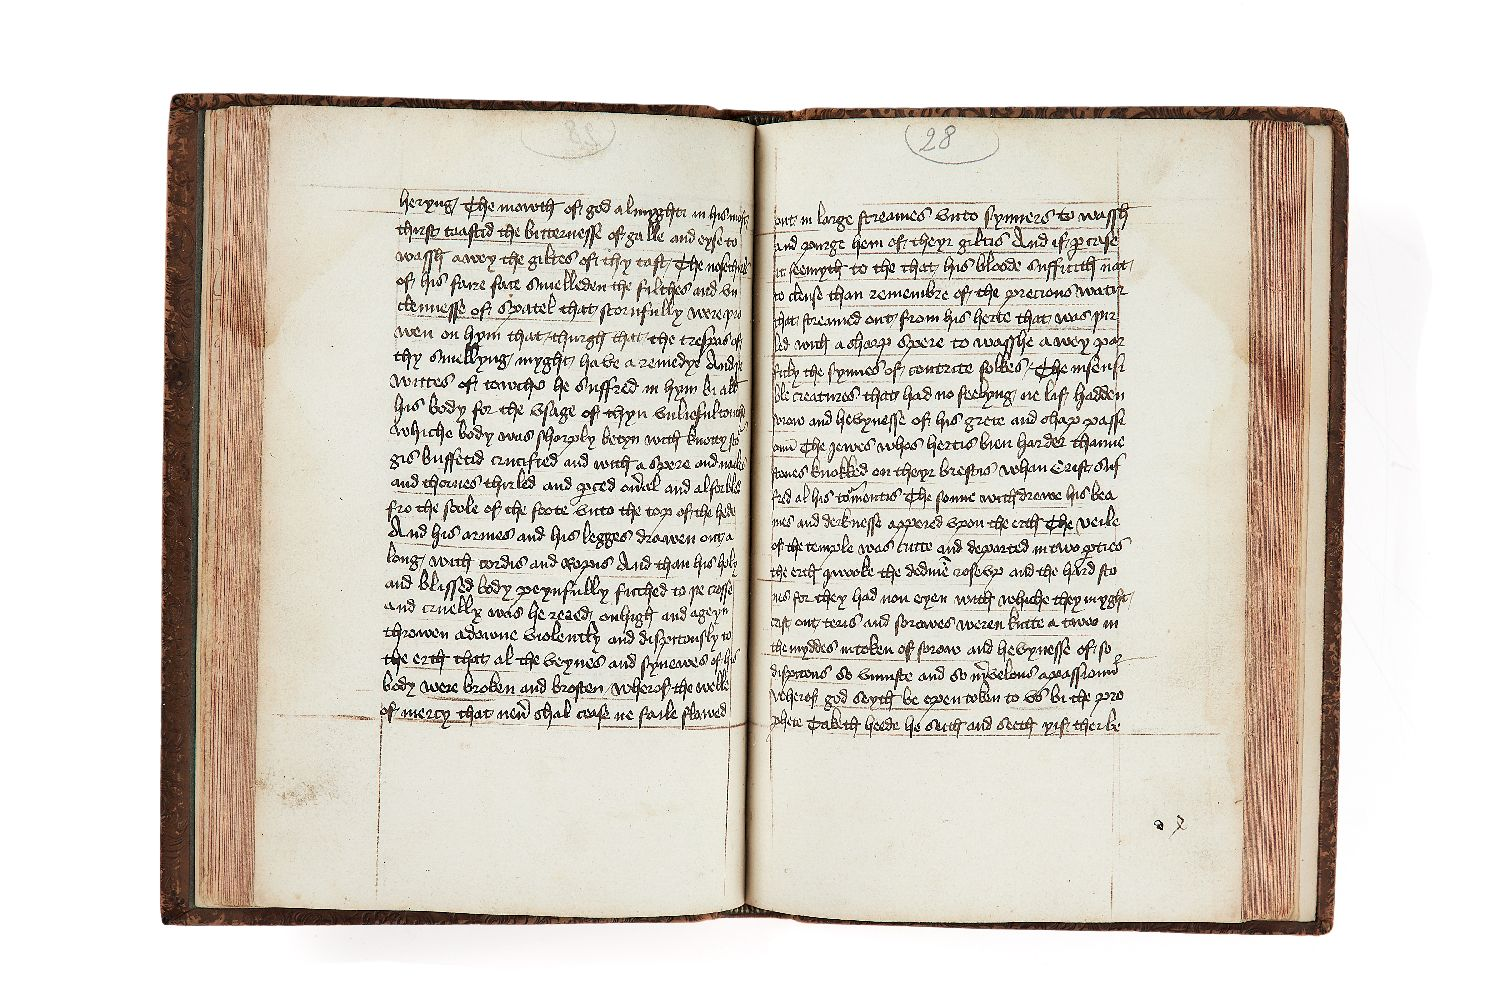 Lot 75 - Ɵ The Myrowr of Recluses, a Middle English translation of the Speculum Inclusorum